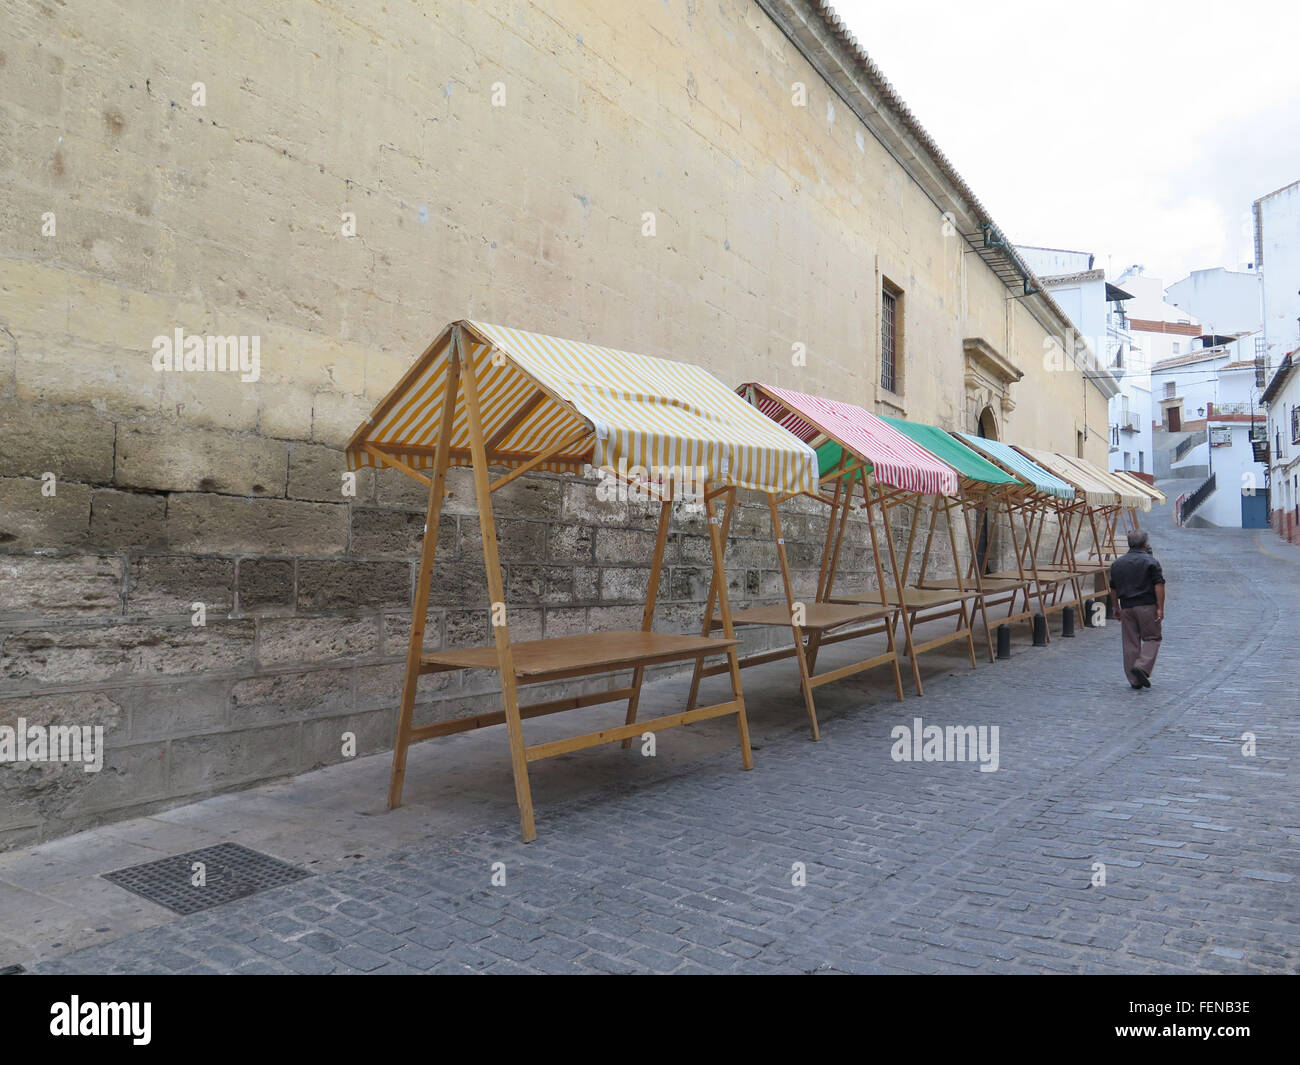 Colorful Market stalls  in Alora square ready for local market - Stock Image